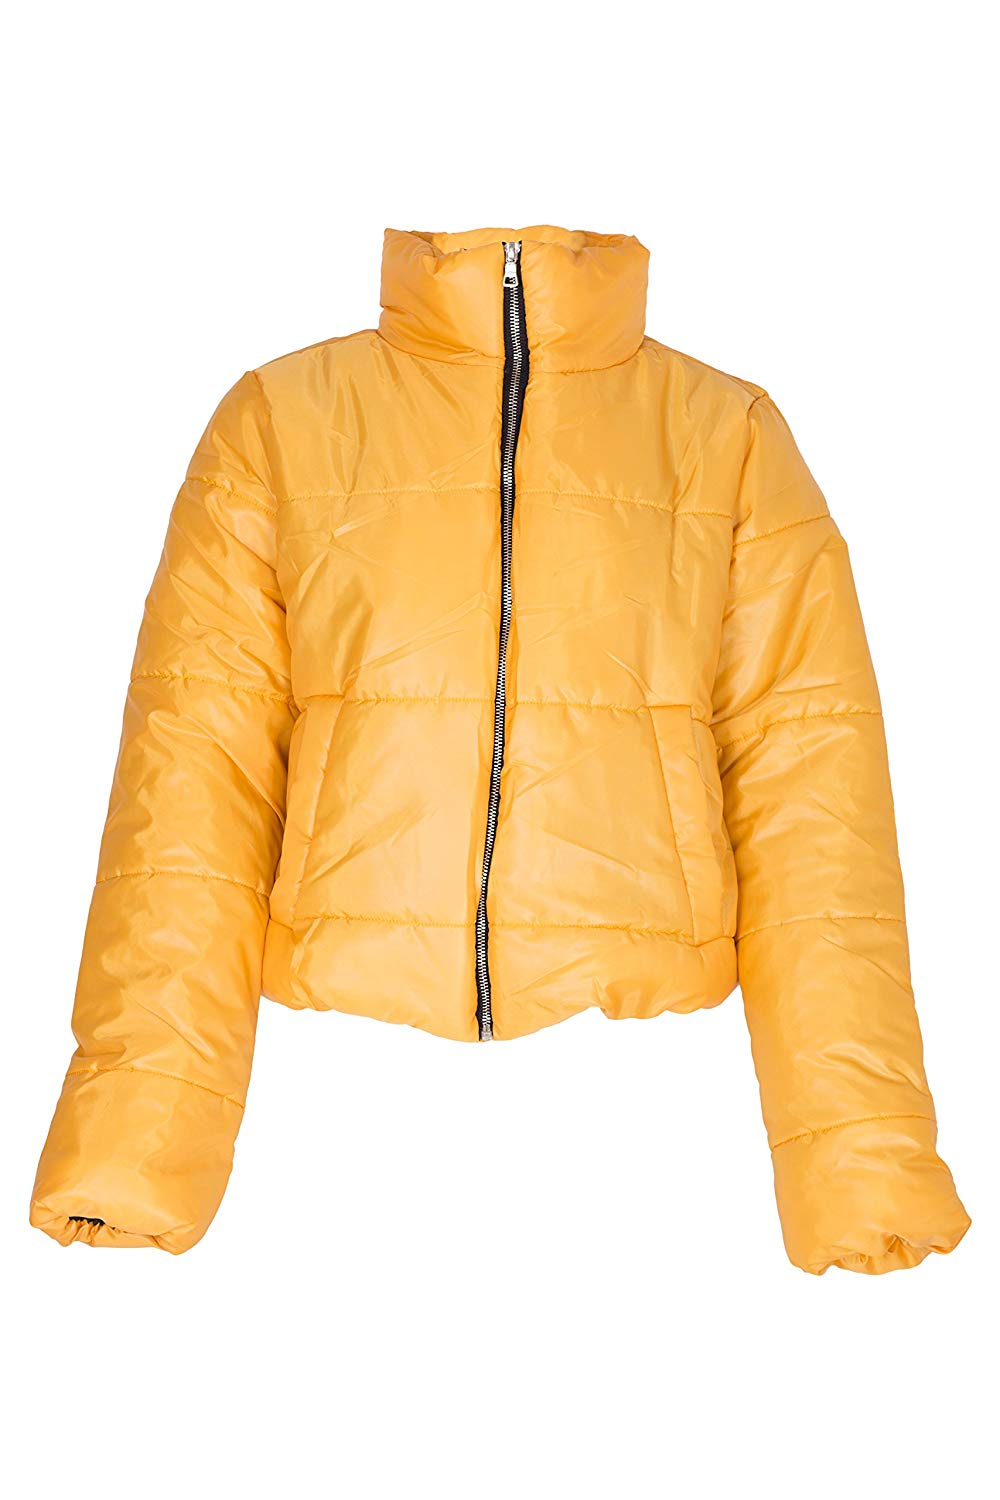 Noroze  — Womens Crop Jacket Padded Puffer Coat Cropped —  $24.99